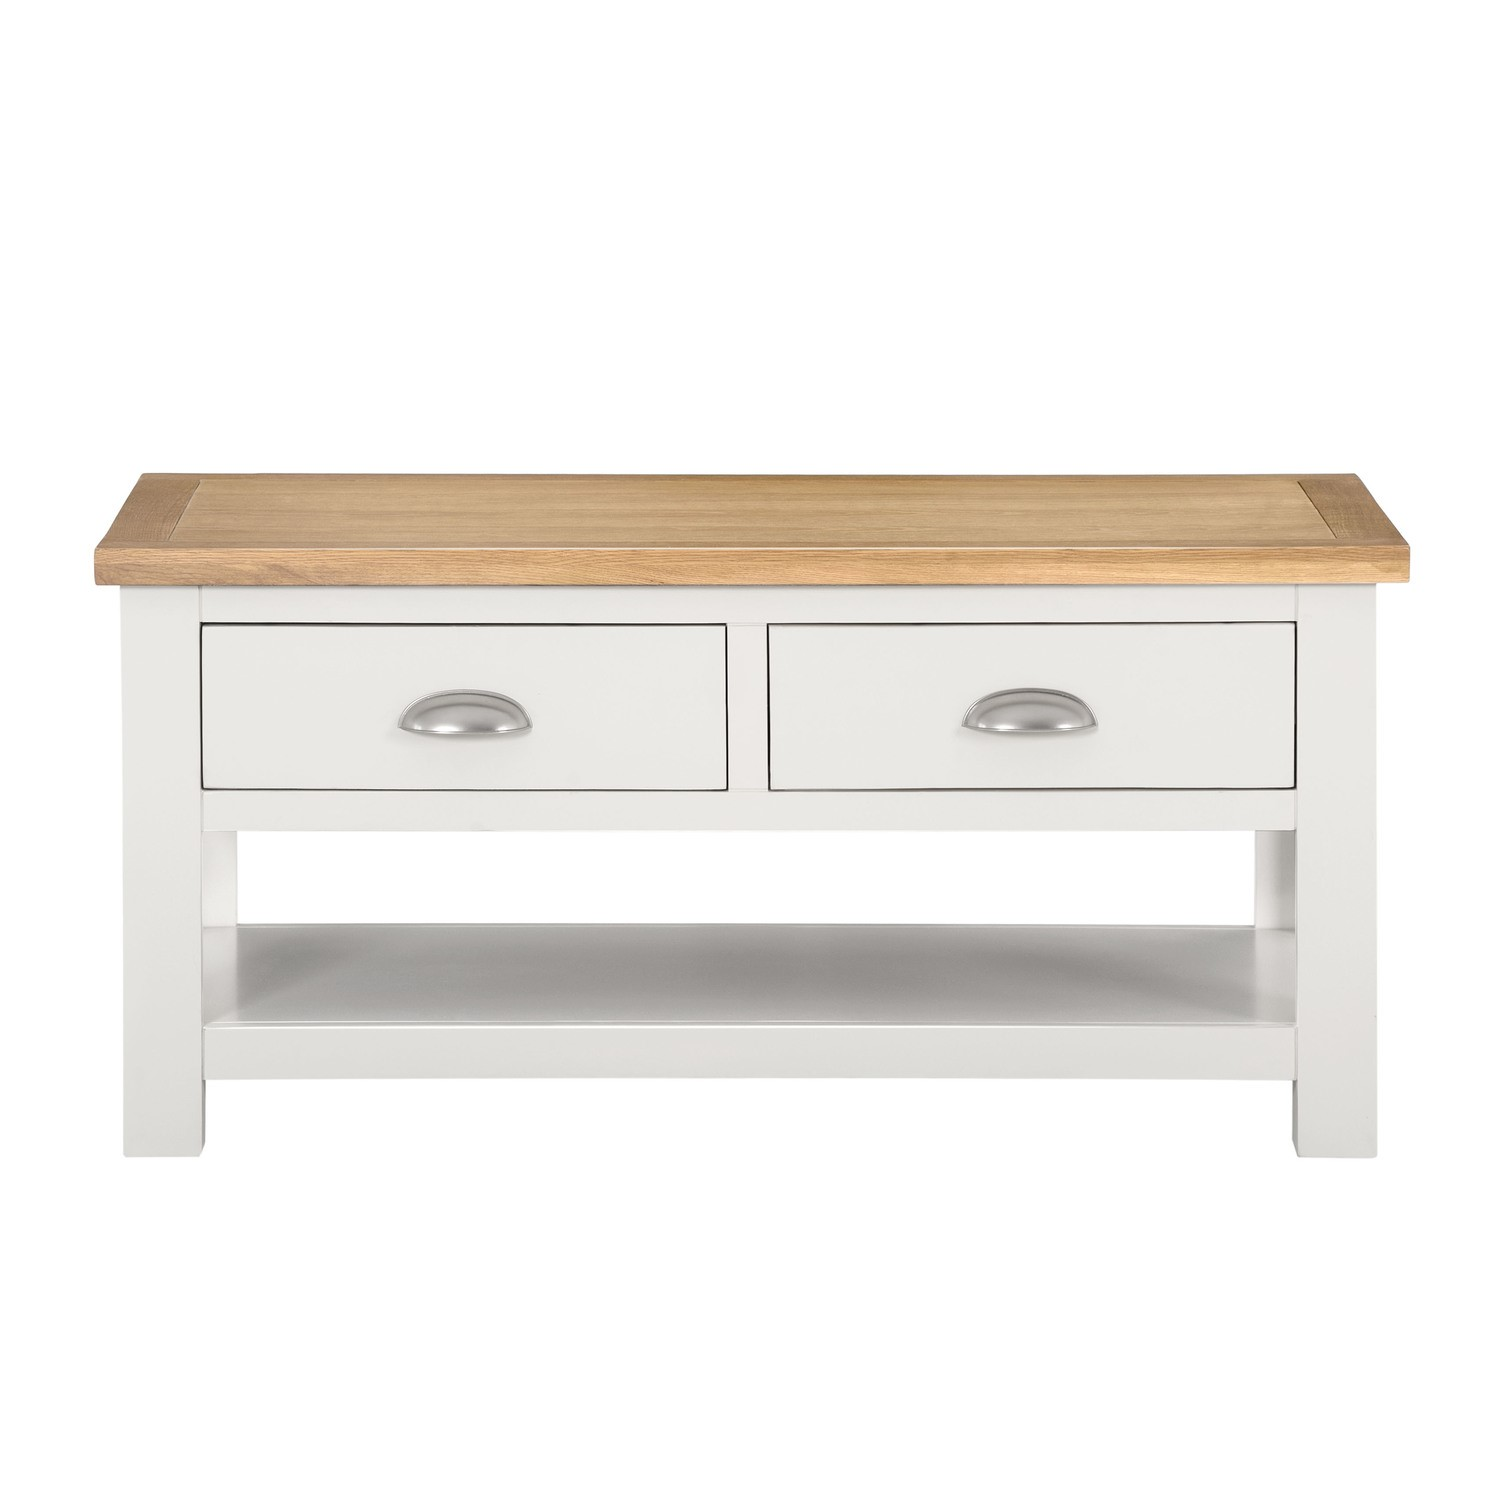 Willow Farmhouse Wood Coffee Table With Storage Drawers Cream